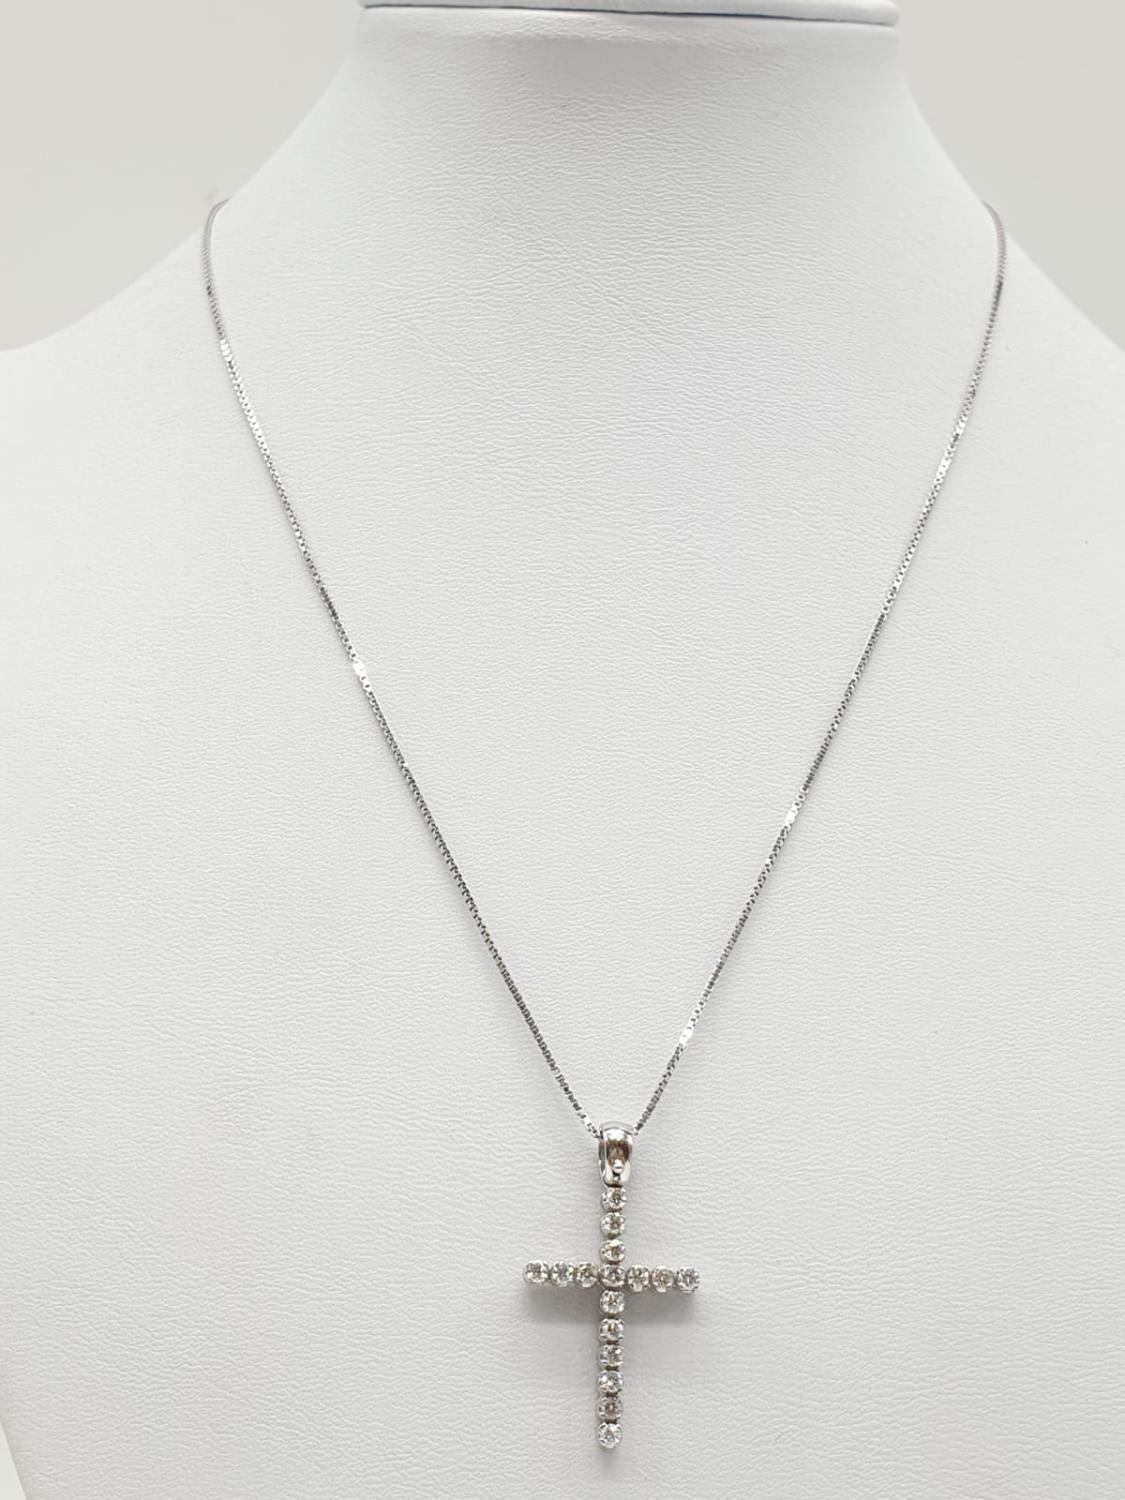 18ct White Gold Diamond Cross on a 38cm CHAIN. 5g - Image 3 of 7